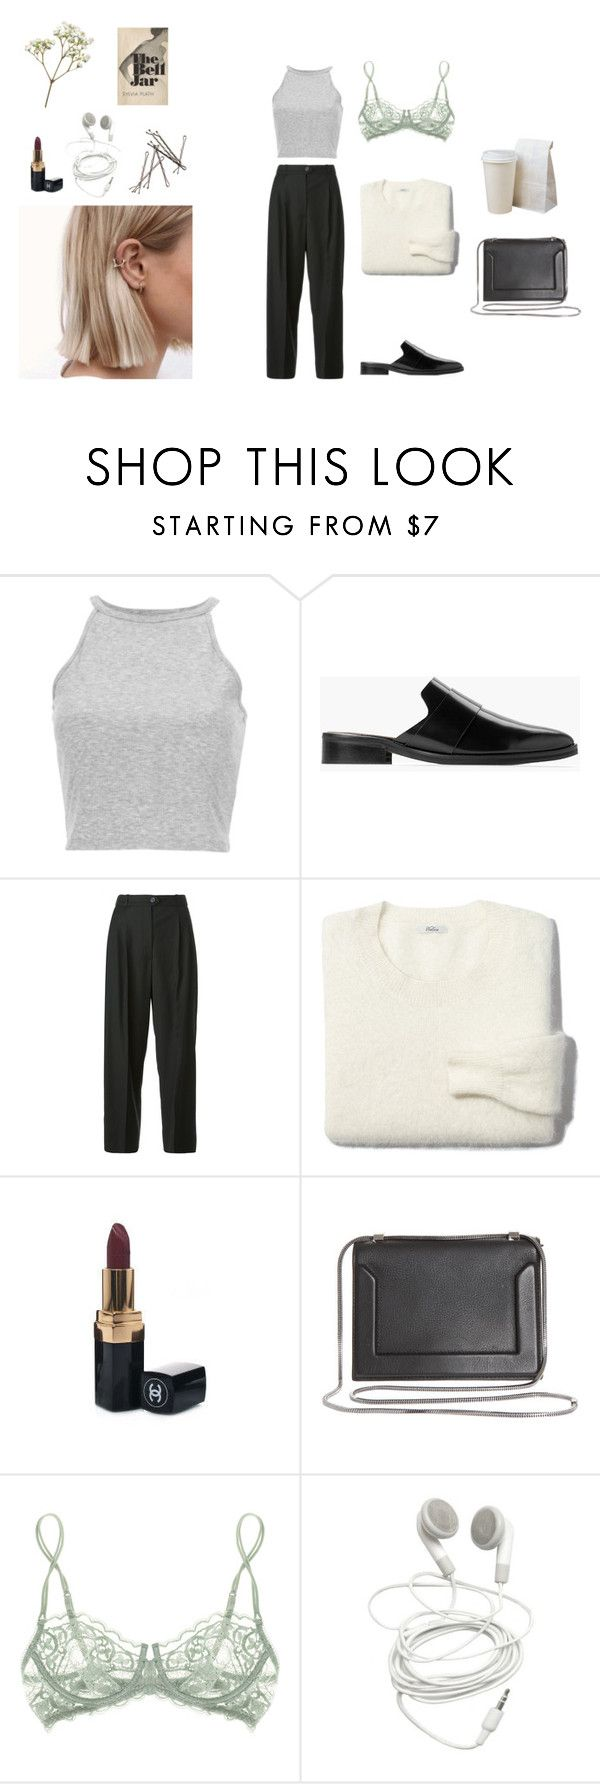 """""""noora amalie sætre"""" by flowersinponds ❤ liked on Polyvore featuring MANGO, Chanel, Madewell, 3.1 Phillip Lim, La Perla and skam"""